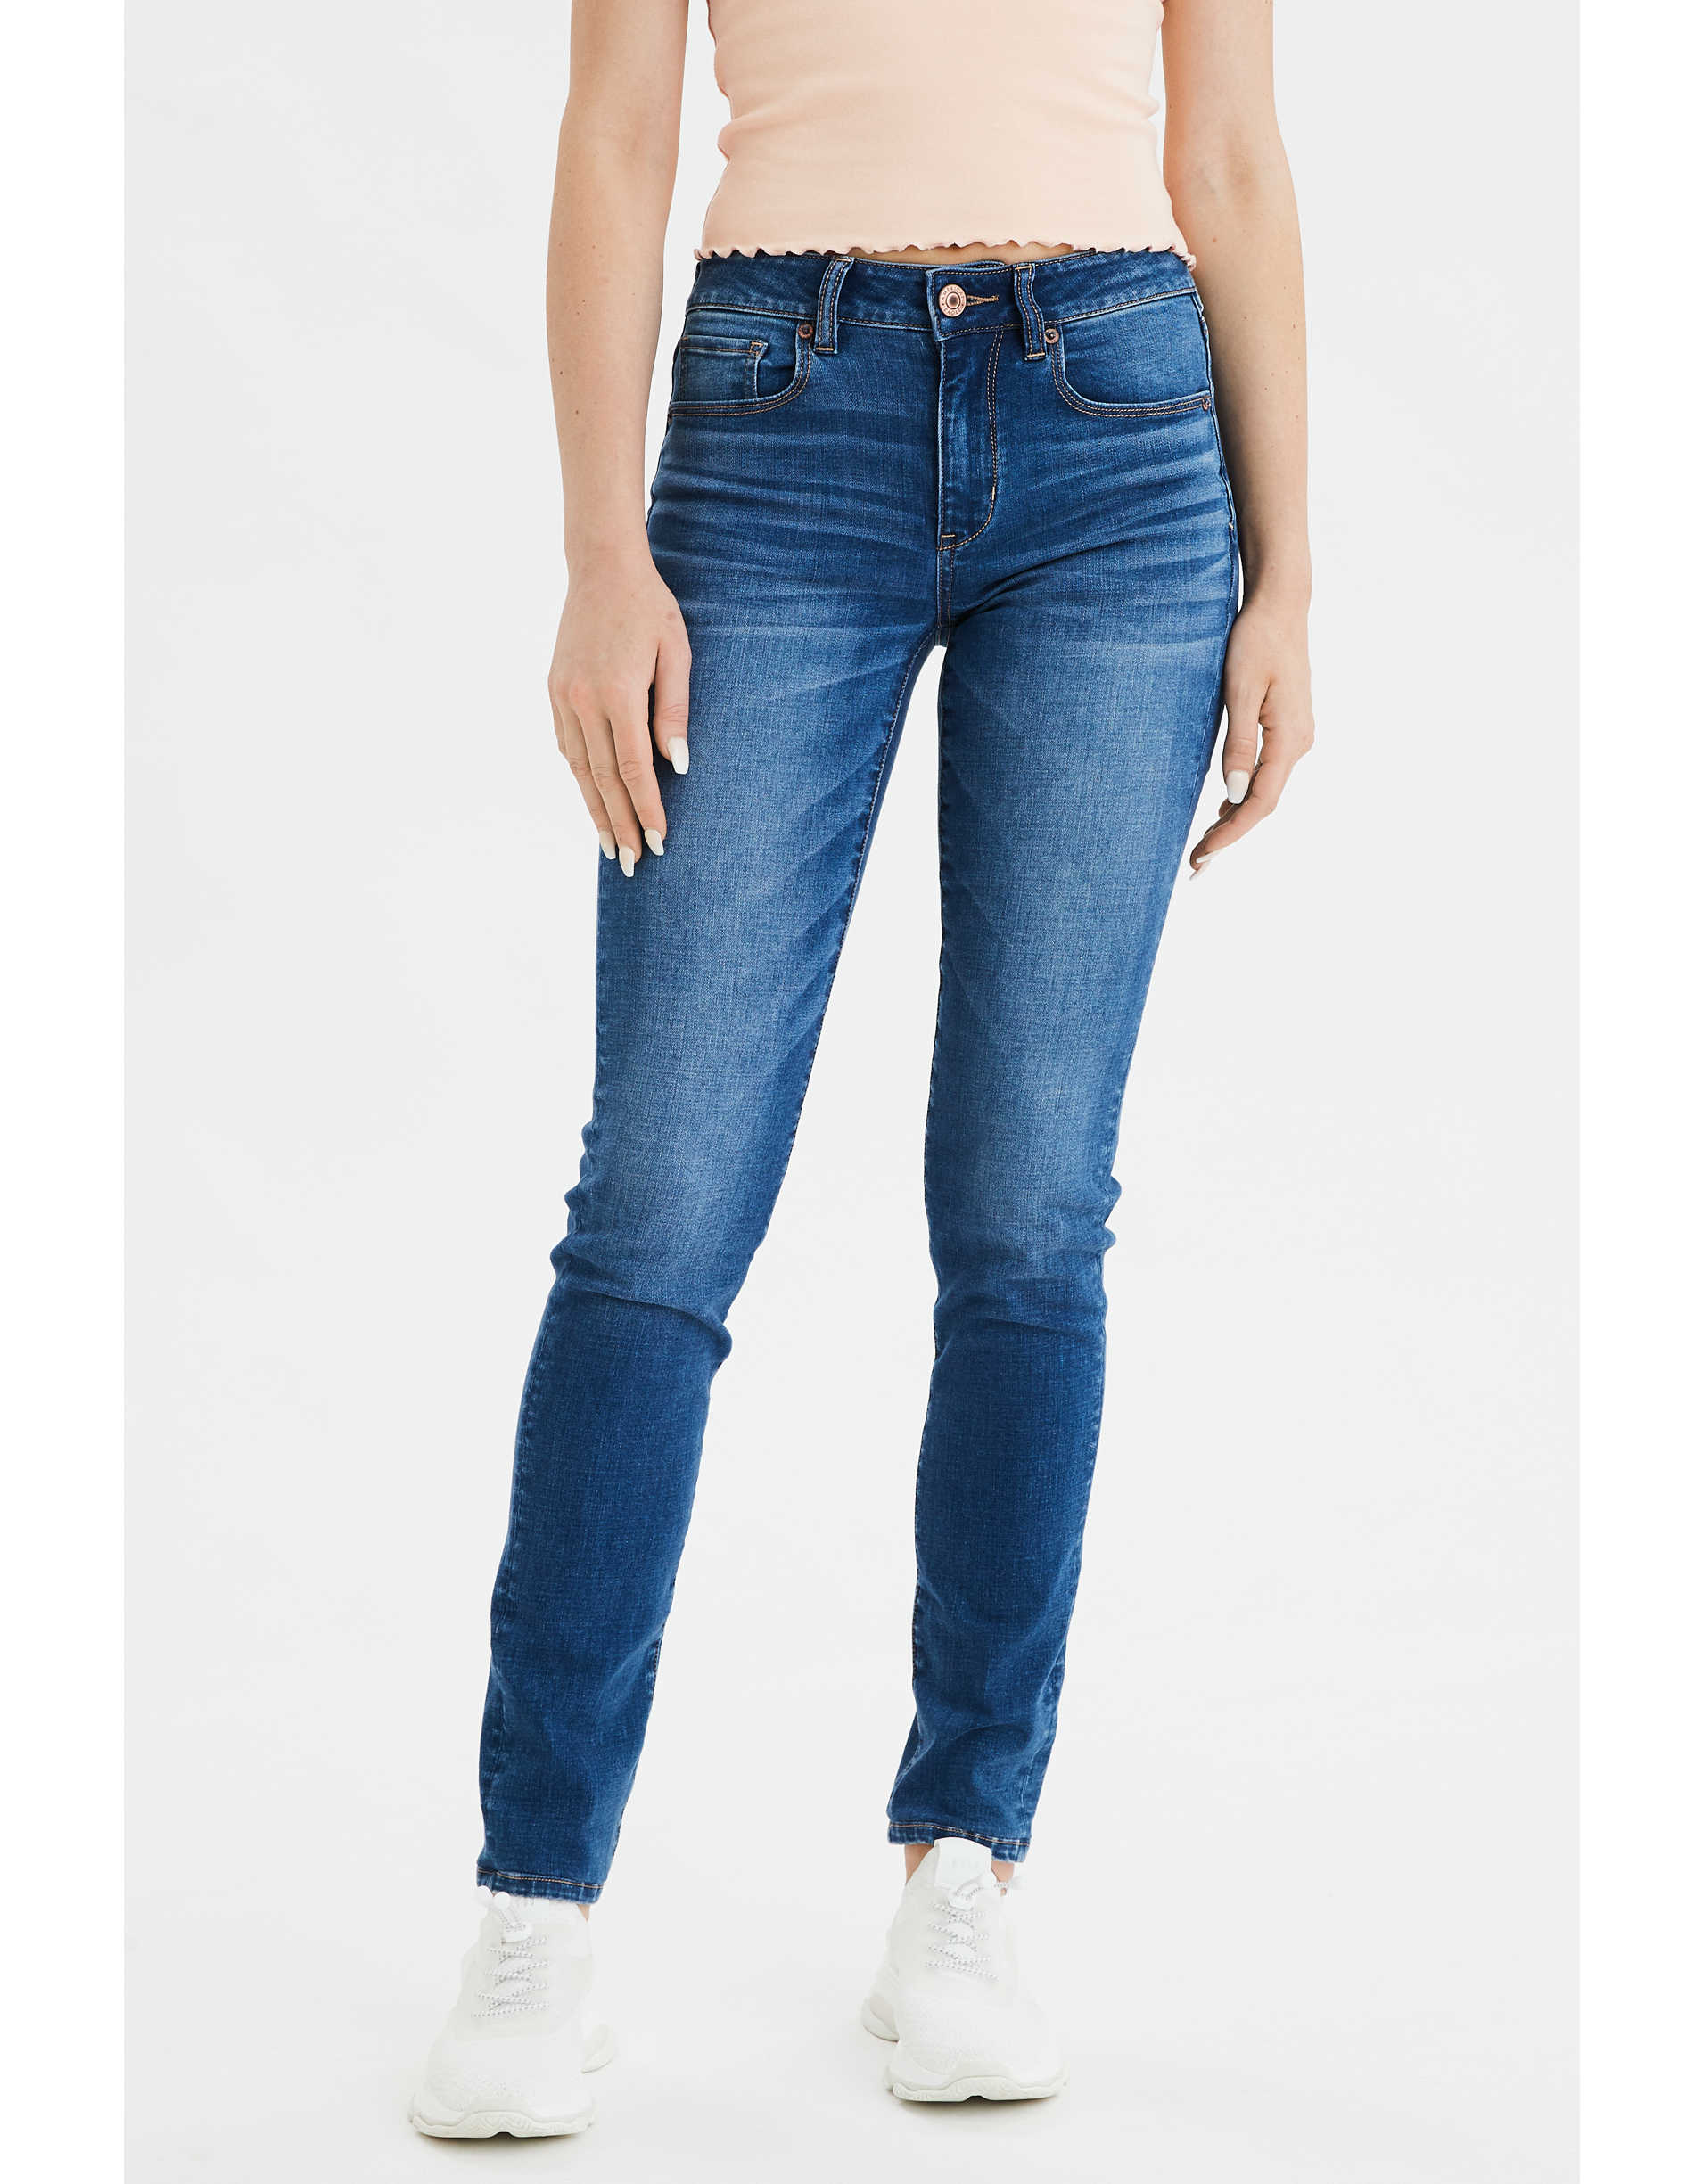 AE High-Waisted Skinny Jean